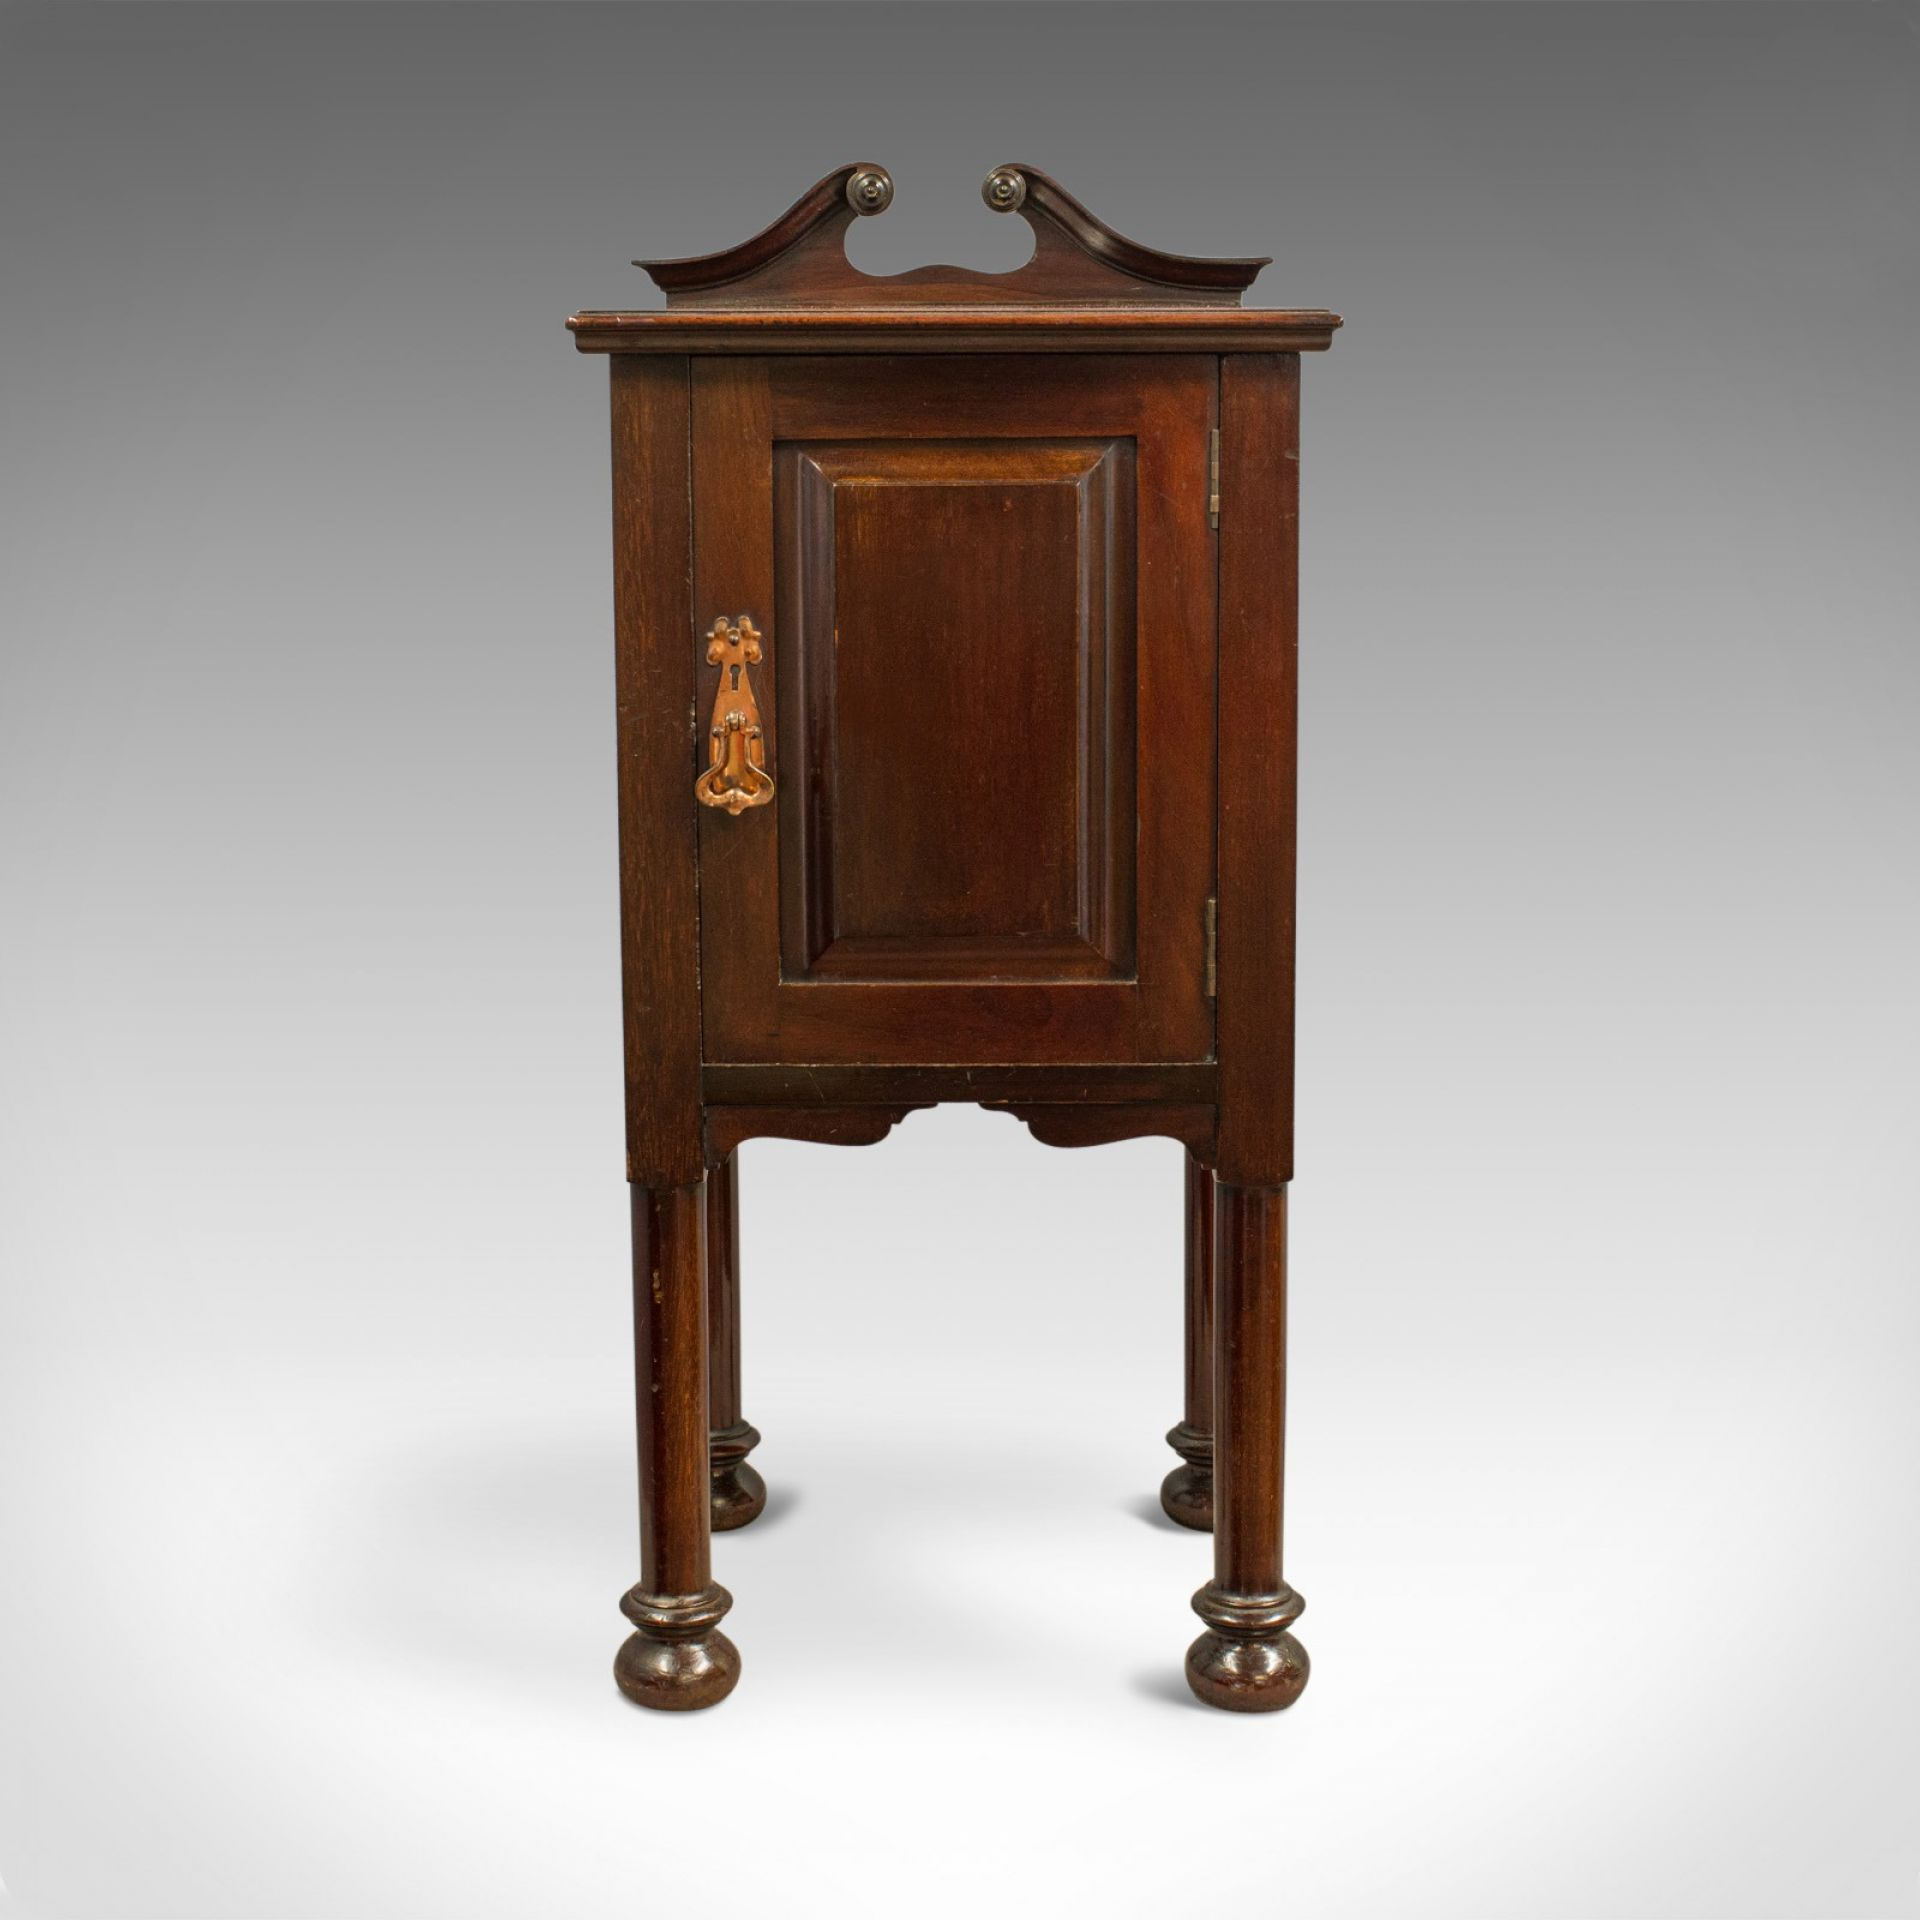 Antique Bedside Cabinet, Arts and Crafts, Maple and Co, Nighstand, c.1890